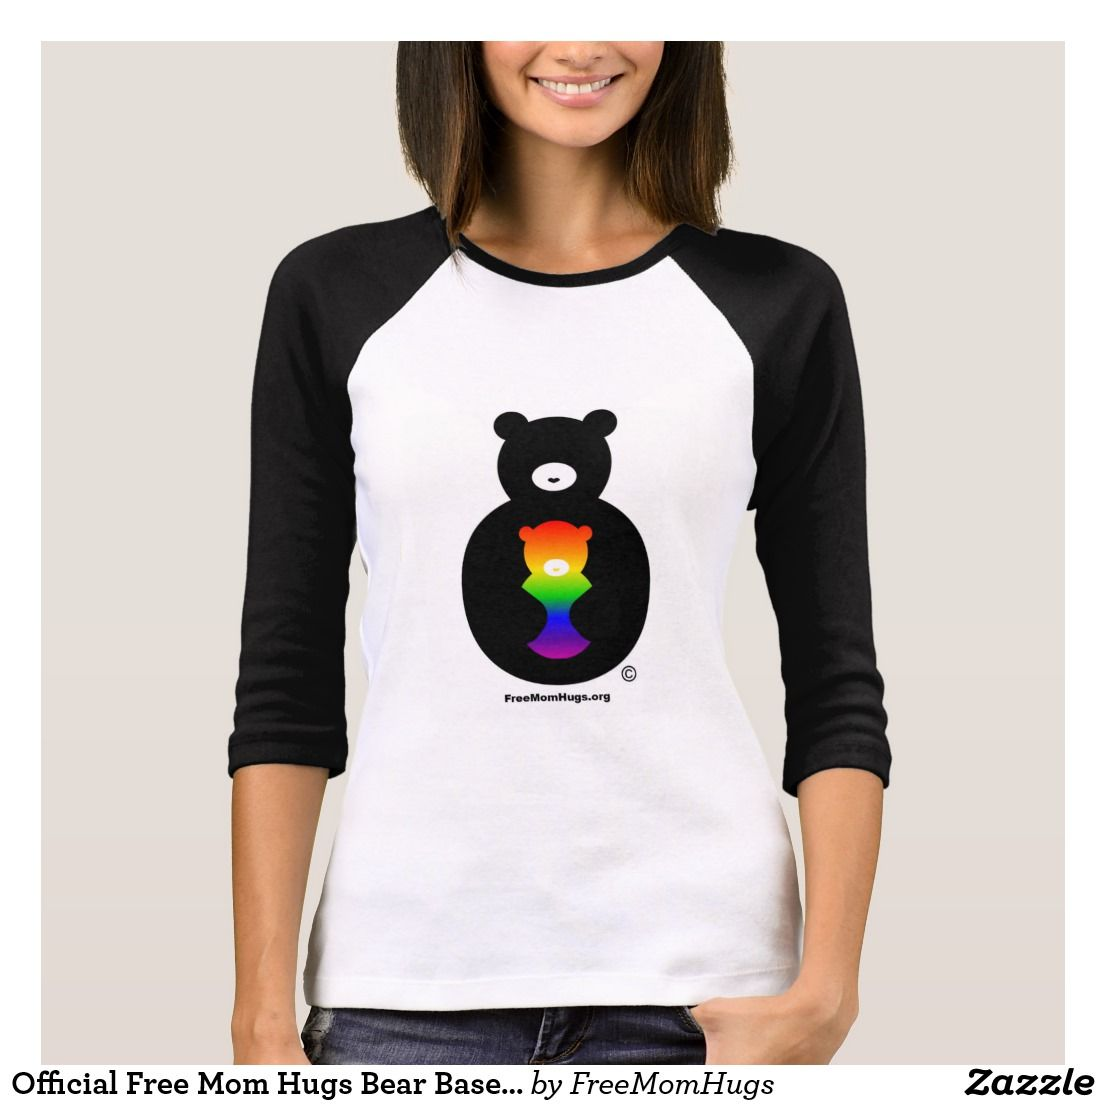 75616180 Official Free Mom Hugs Bear Baseball shirt | Thank you for using our  affiliate link, which allows us to make a commission (at no extra cost to  you) should ...